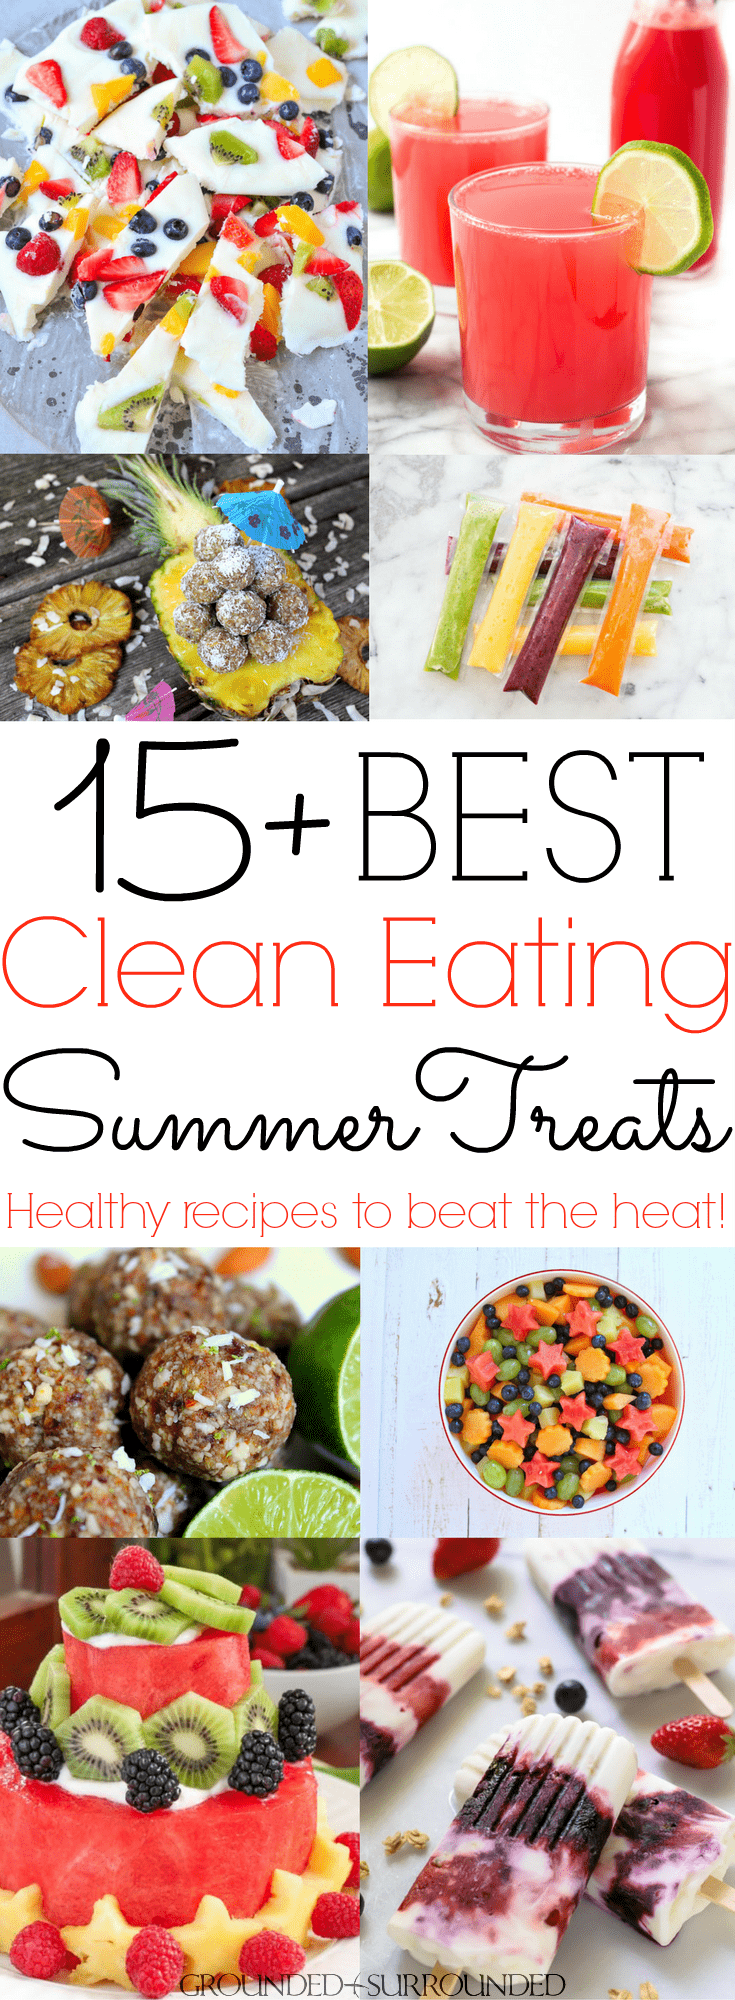 The BEST Clean Eating Summer Treats | What's on your bucket list this summer? Food? Me too! I love new healthy recipe ideas that beat the heat. Whether you are looking for a light dessert for a crowd, fun snacks, or something sweet for kids I got you covered. These cool, gluten-free, & low carb recipes are easily adaptable to Paleo, Whole30, 21 Day Fix, and just plain delicious! Popsicles (fudgesicles!), frozen yogurt (protein!), watermelon drinks, easy cakes, you name it!